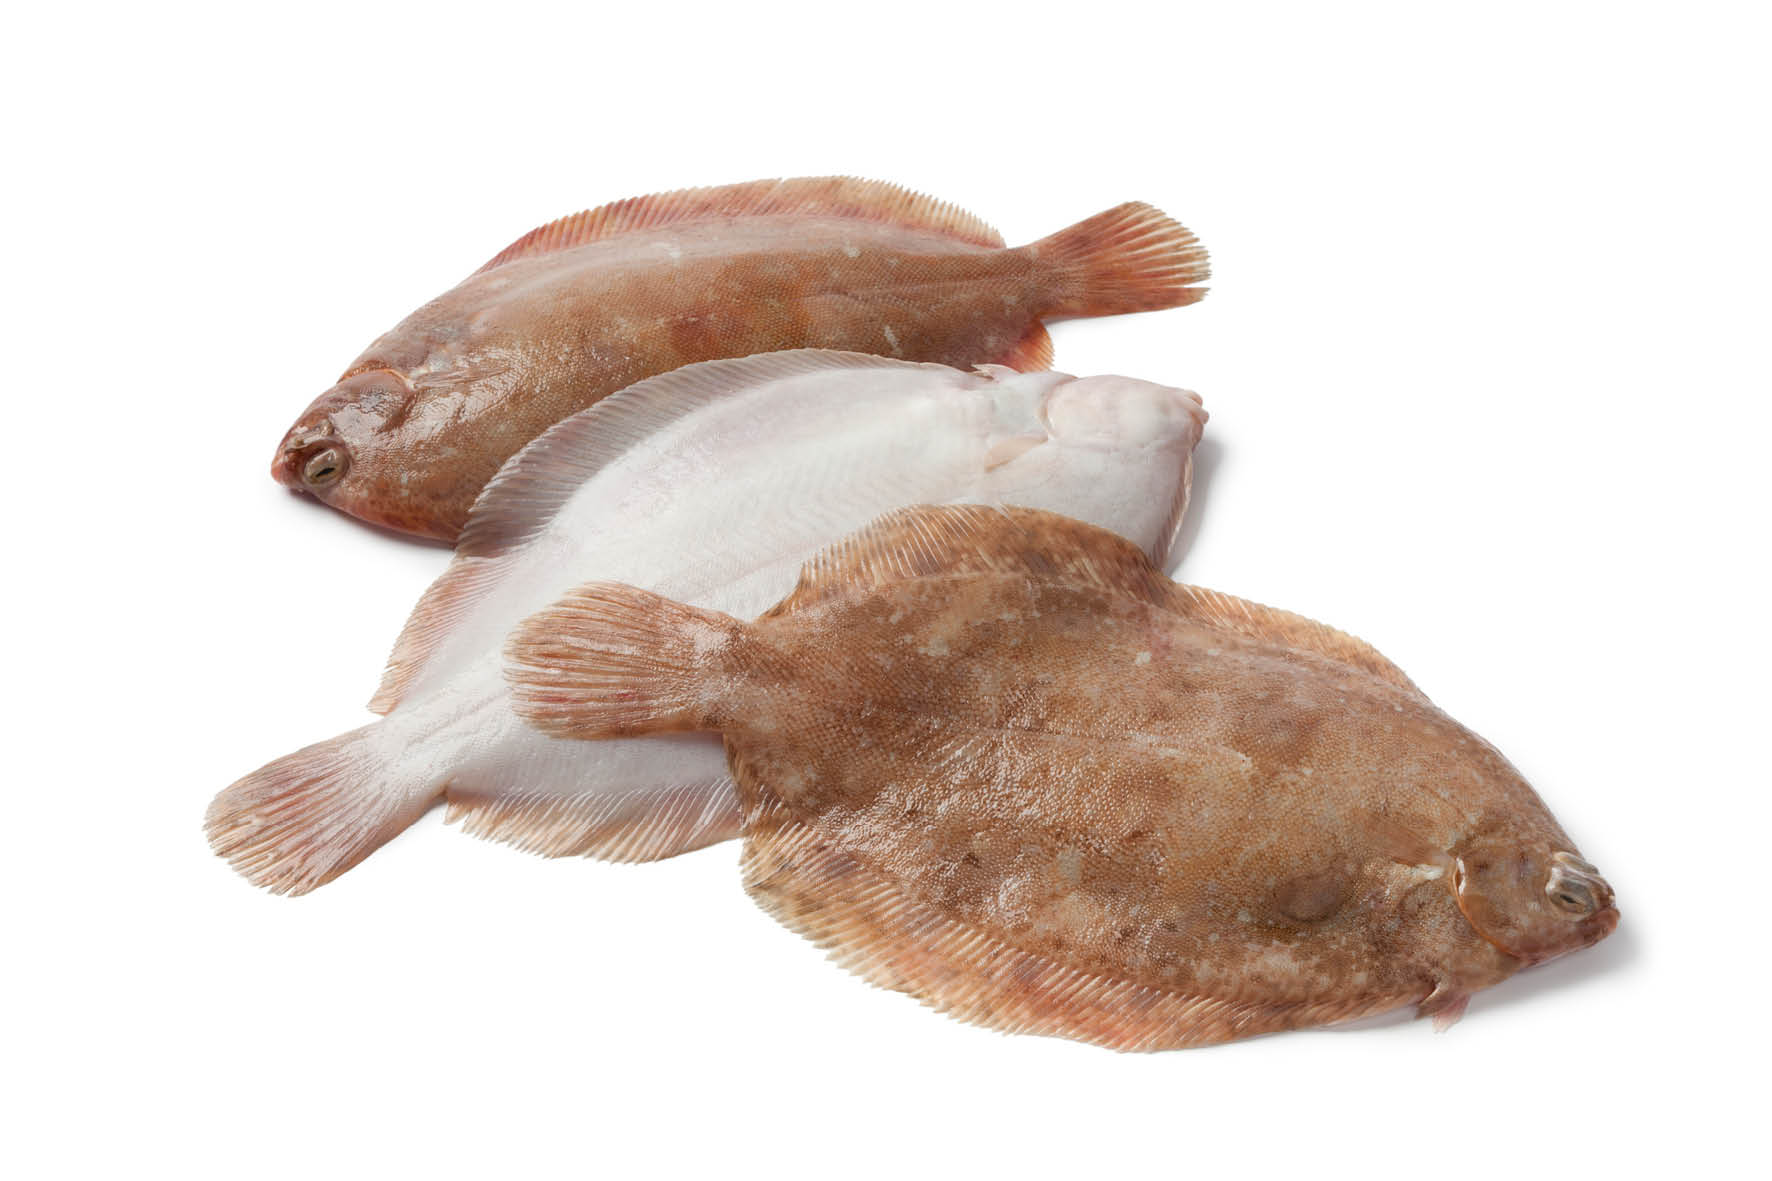 phils_plaice_north_shields_15.jpg